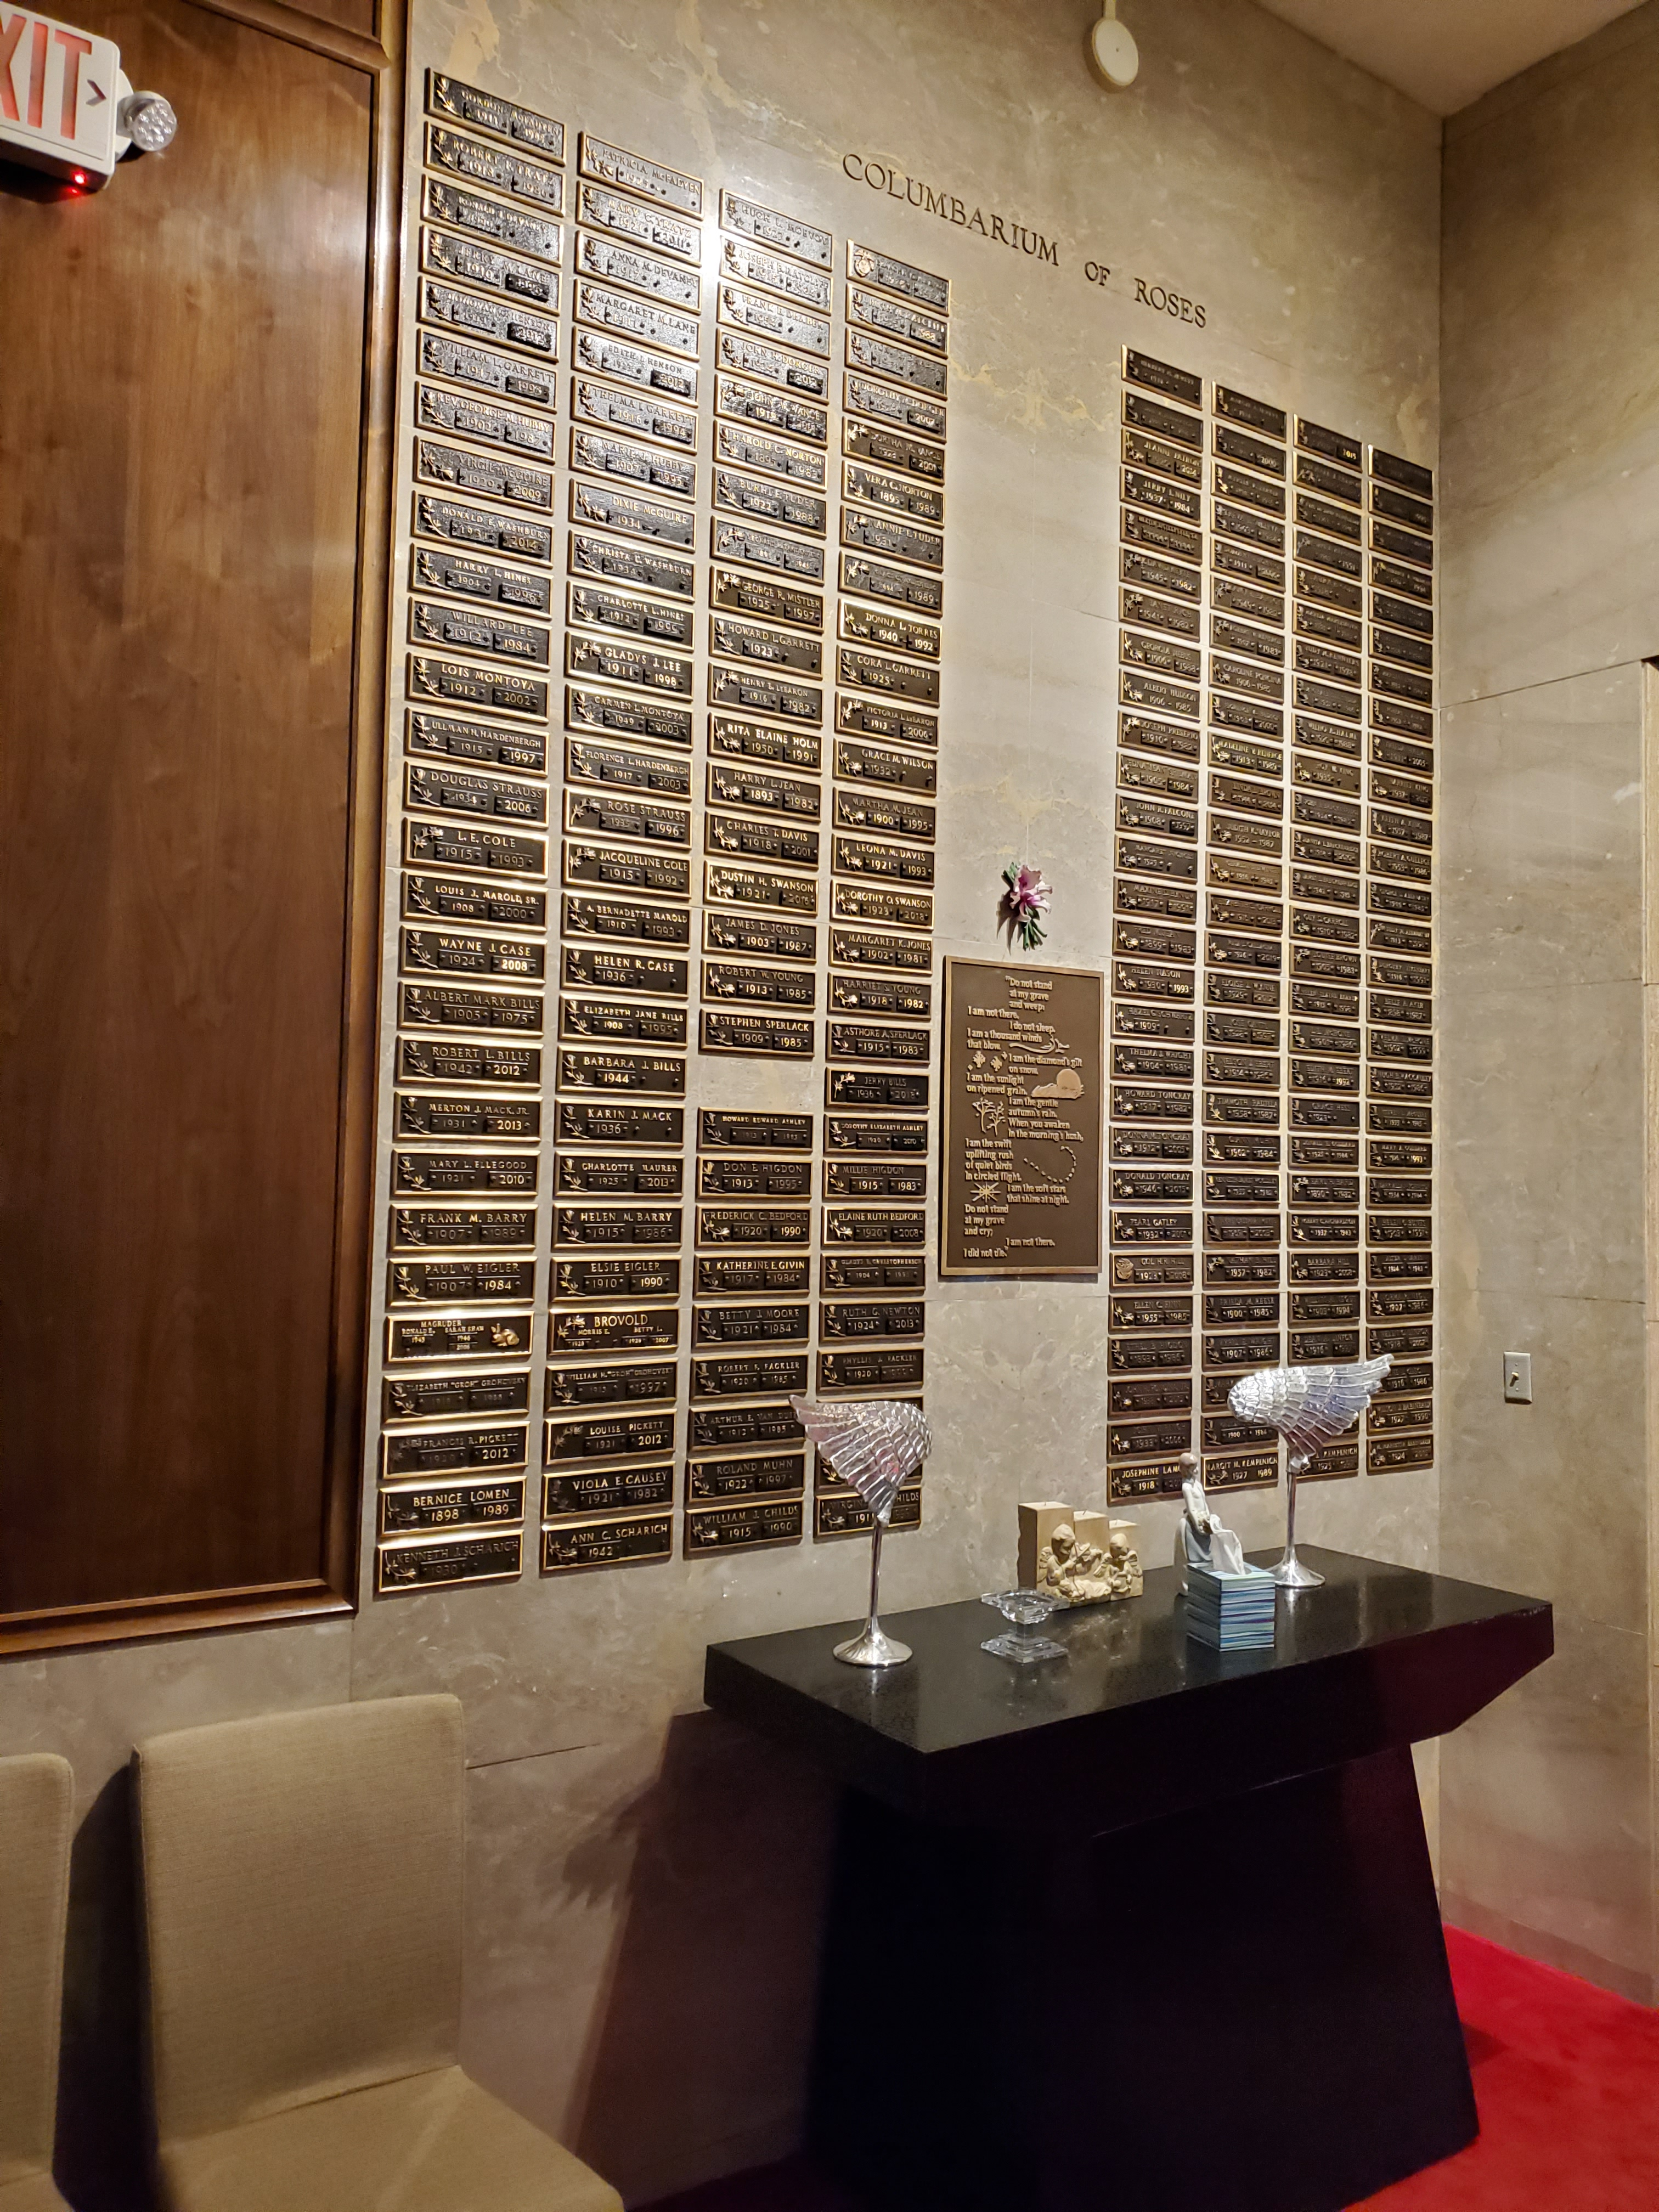 """Columbarium of Roses with bronze memorialization plaques in the """"America the Beautiful"""" Chapel"""